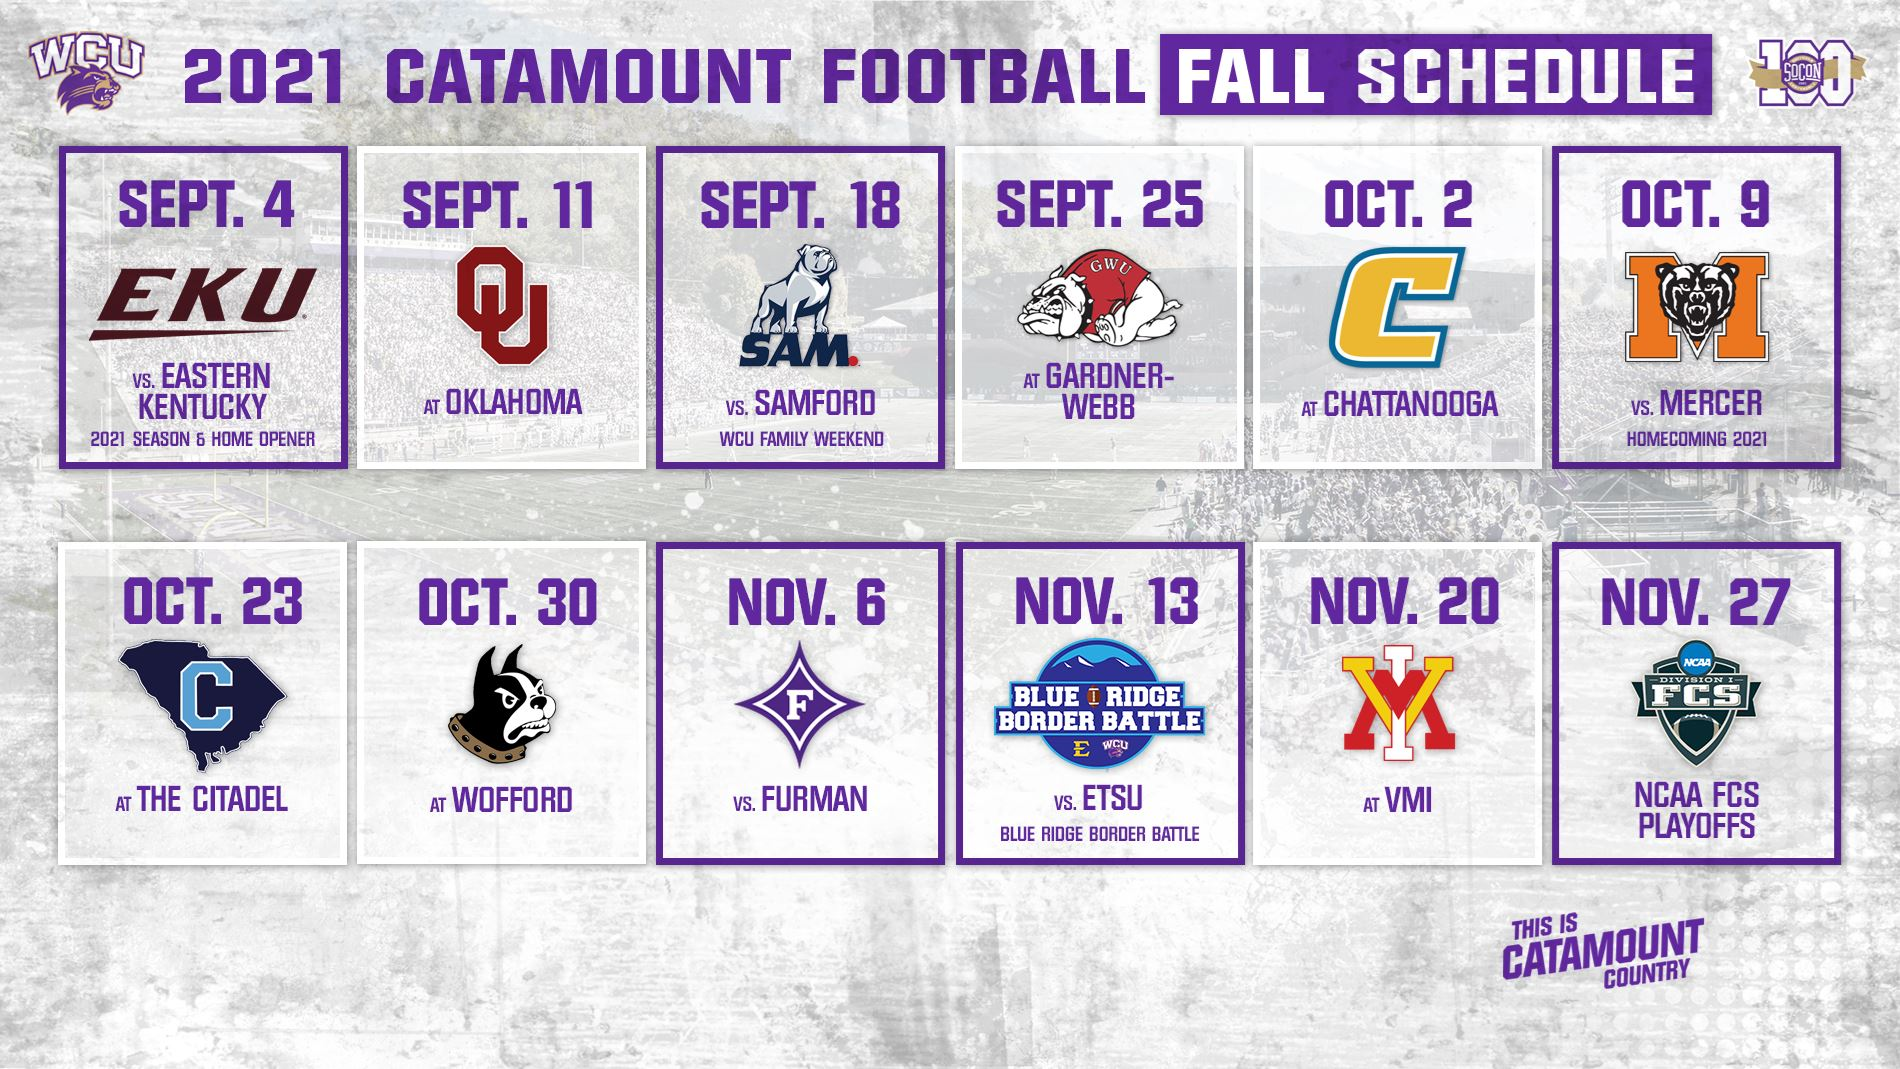 2021 WCU Fall Football Schedule